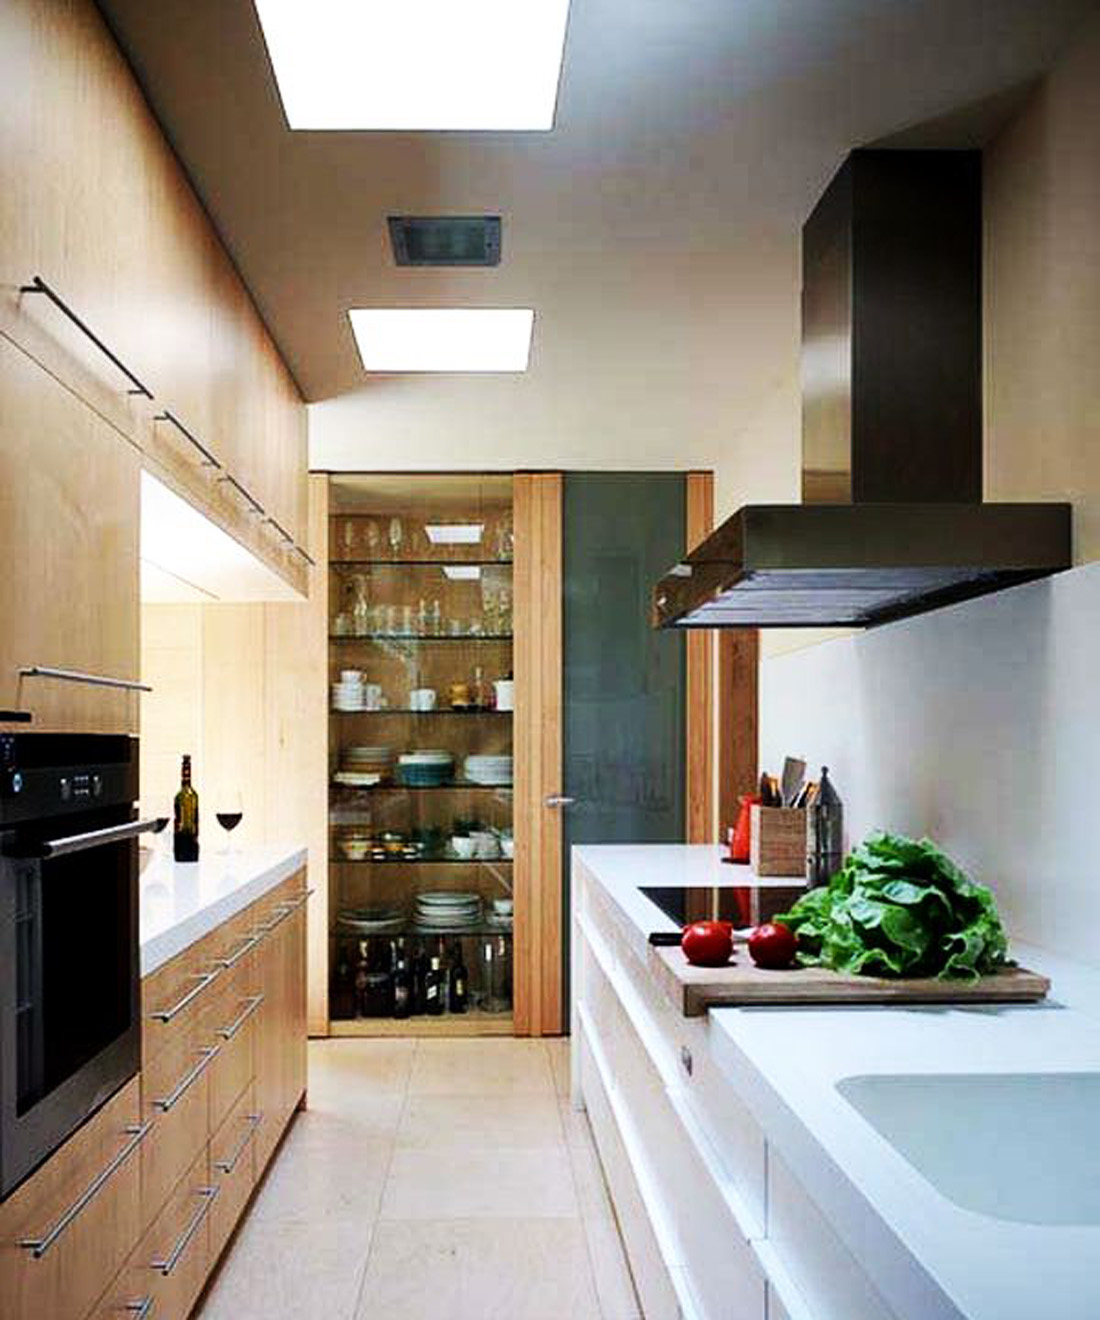 25 modern small kitchen design ideas Small kitchen design pictures ideas